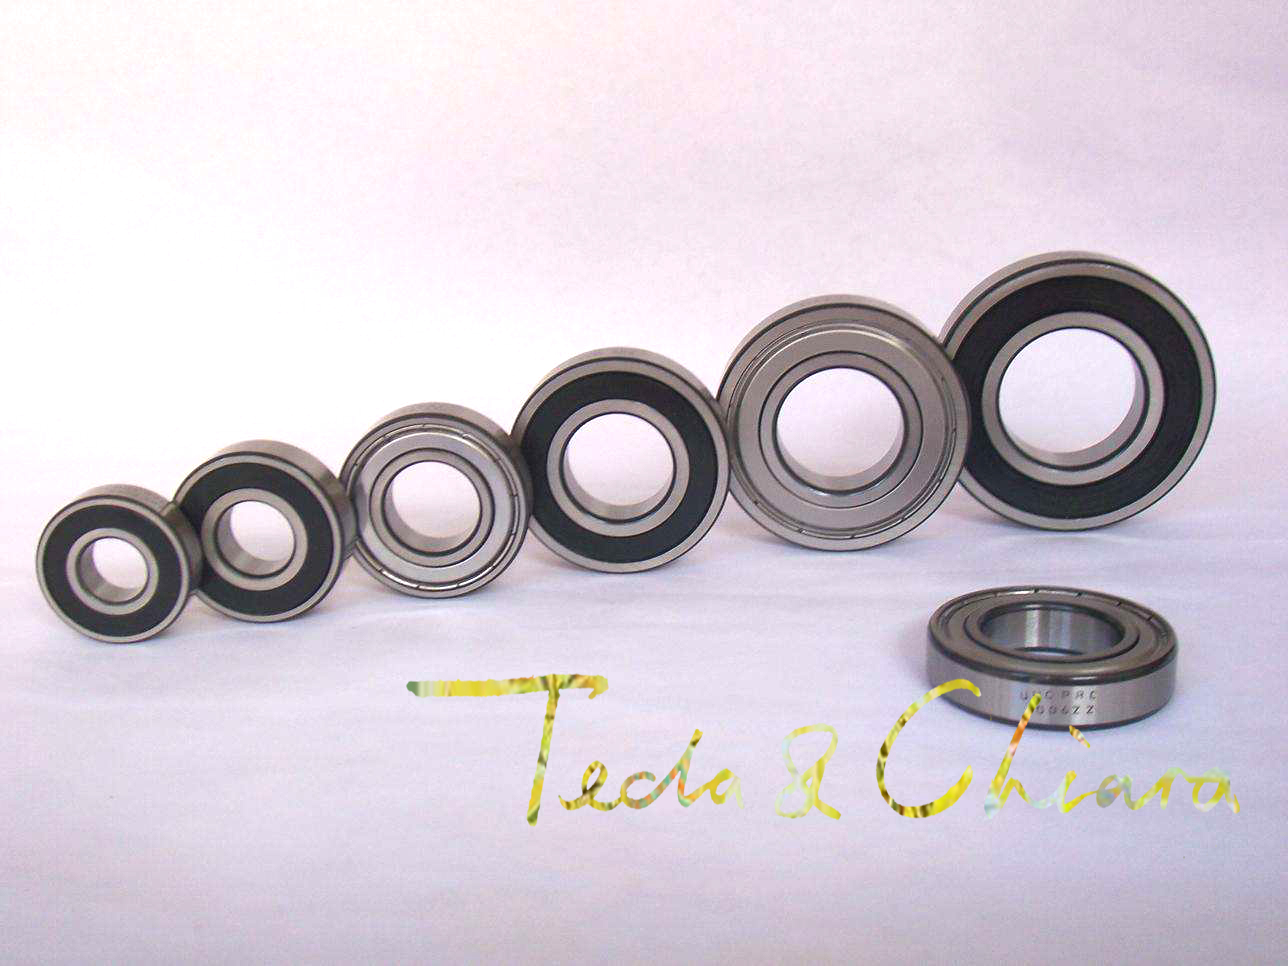 Bearings Power Transmission R12 R12zz R12rs R12-2z R12-2rs Zz Rs Rz 2rz Deep Groove Ball Bearings 19.05 X 41.275 X 11.112mm 3/4 X 1 5/8 X 7/16 Relieving Rheumatism And Cold